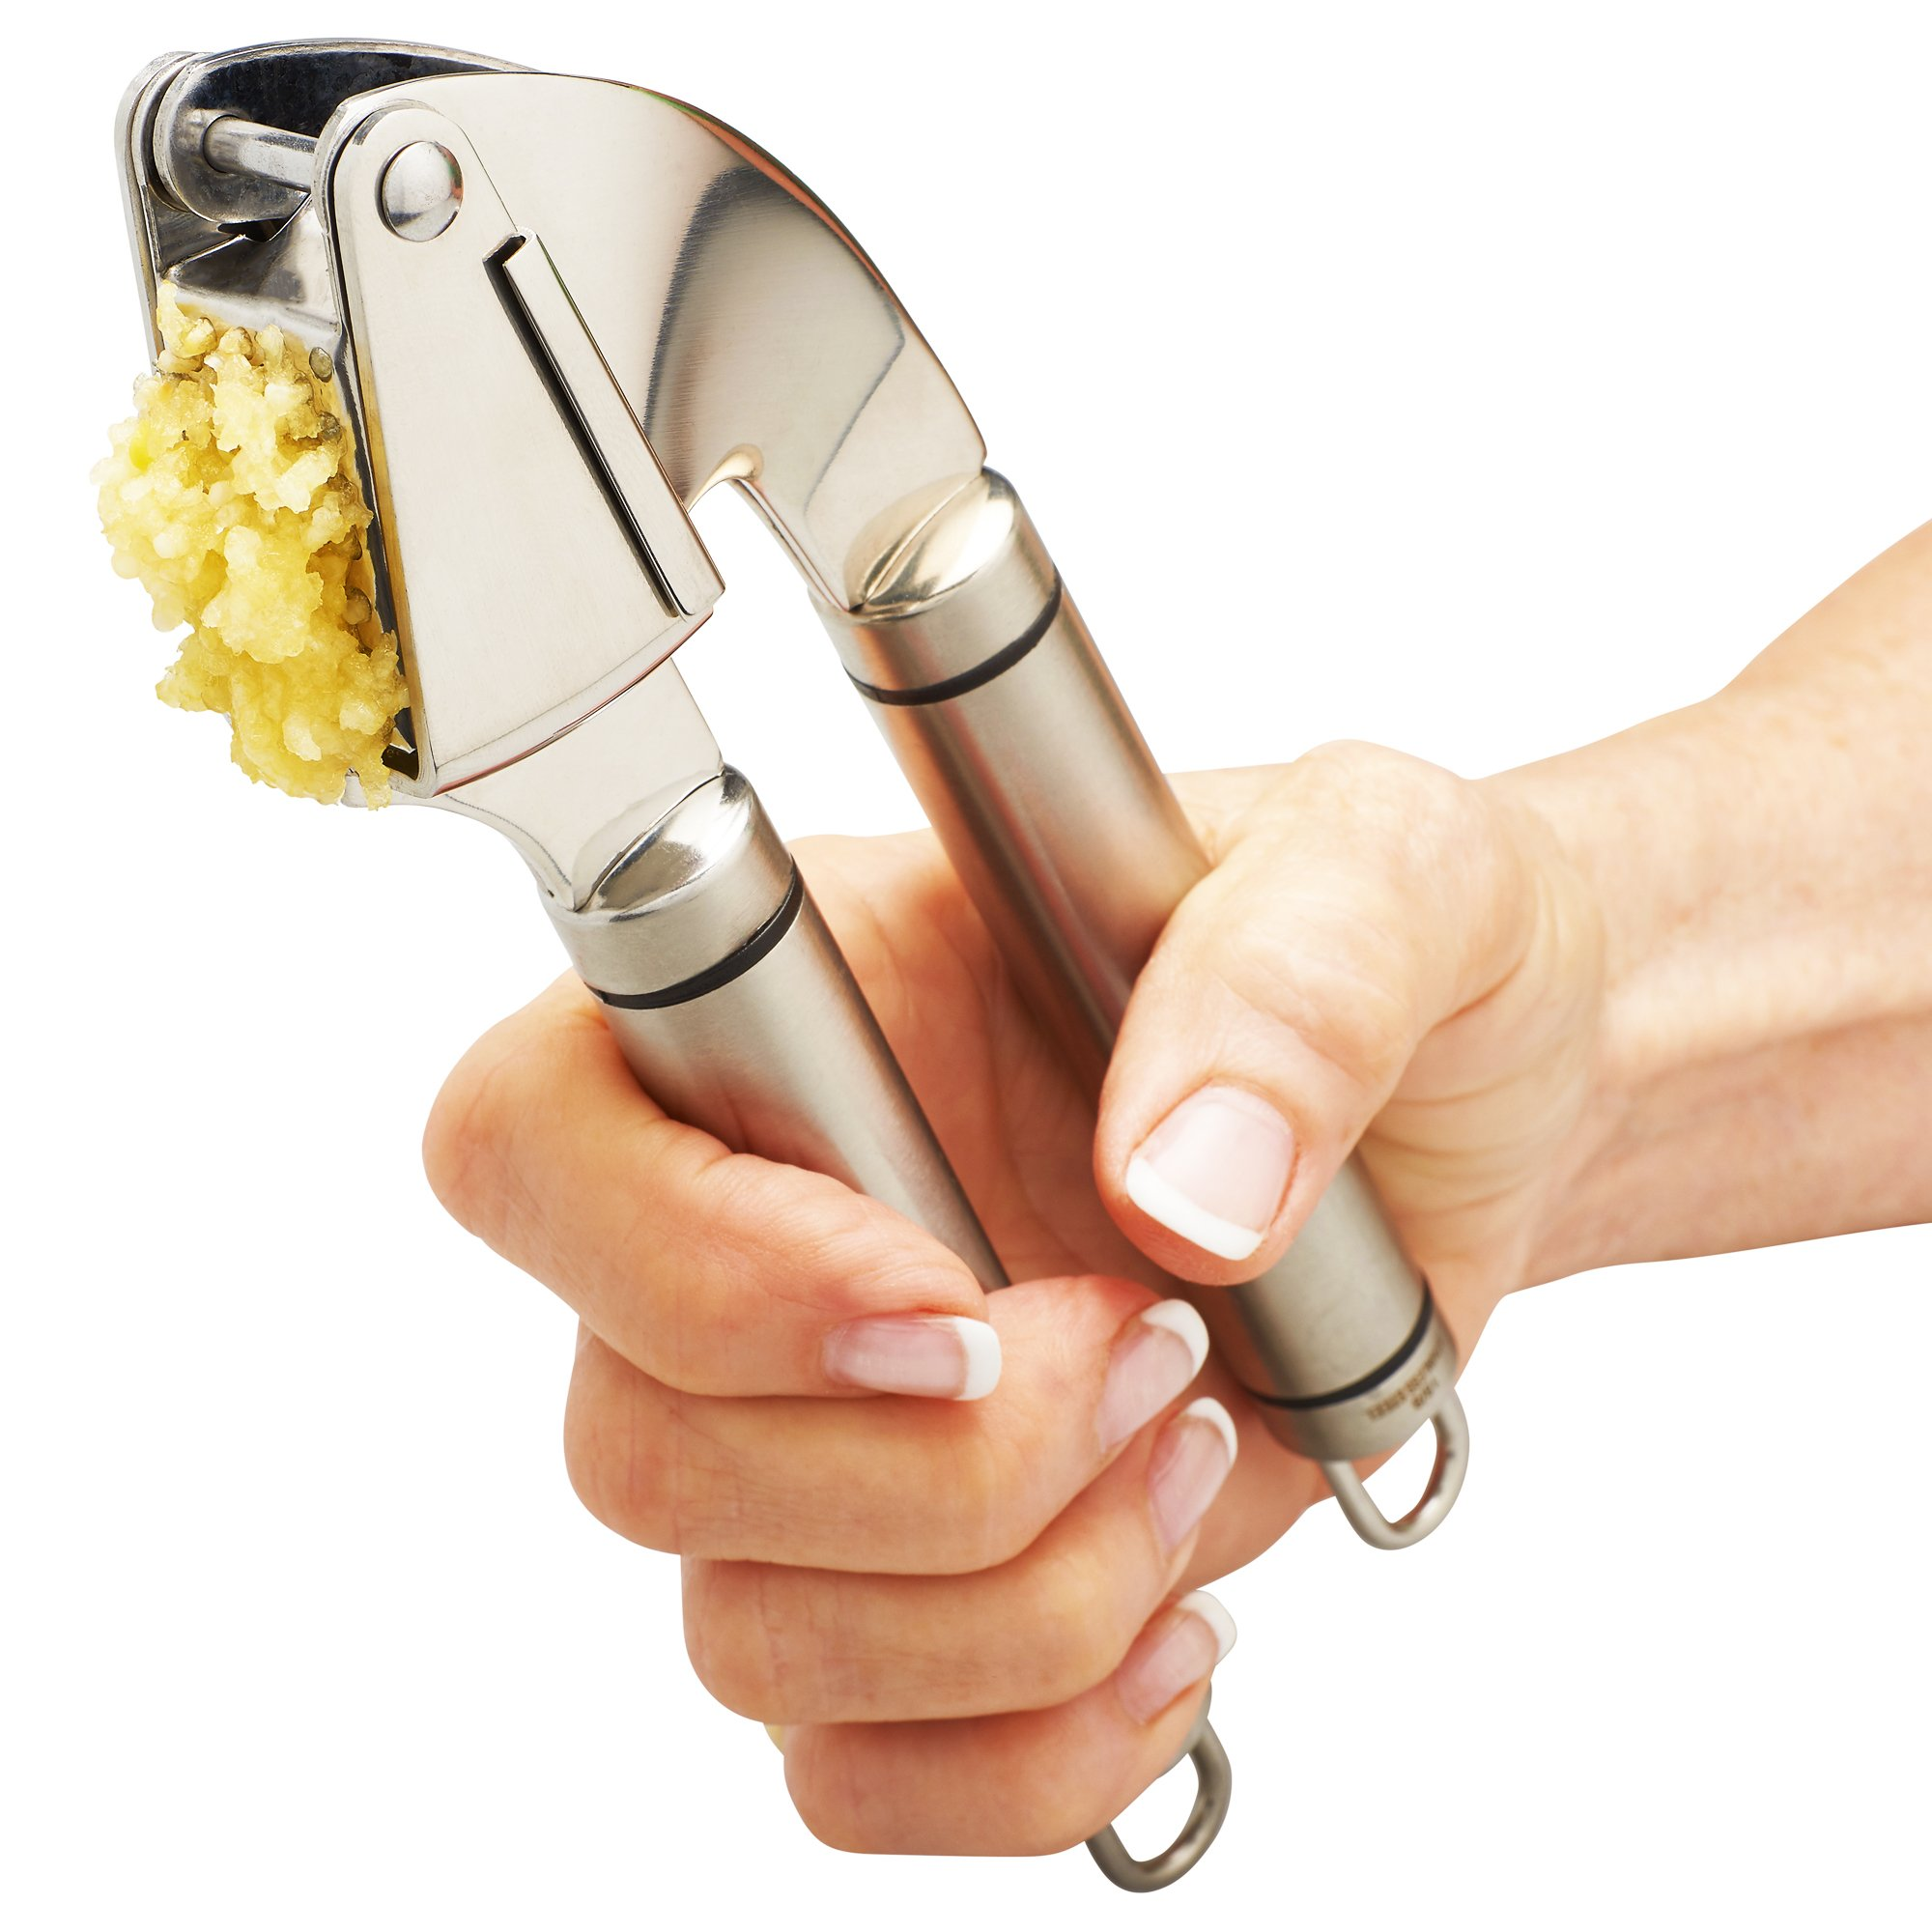 Qlty First Stainless Steel Professional Garlic Press, Crusher Complete Bundle - Includes Silicone Peeler, Cleaning Brush and Garlic Recipe Ebook